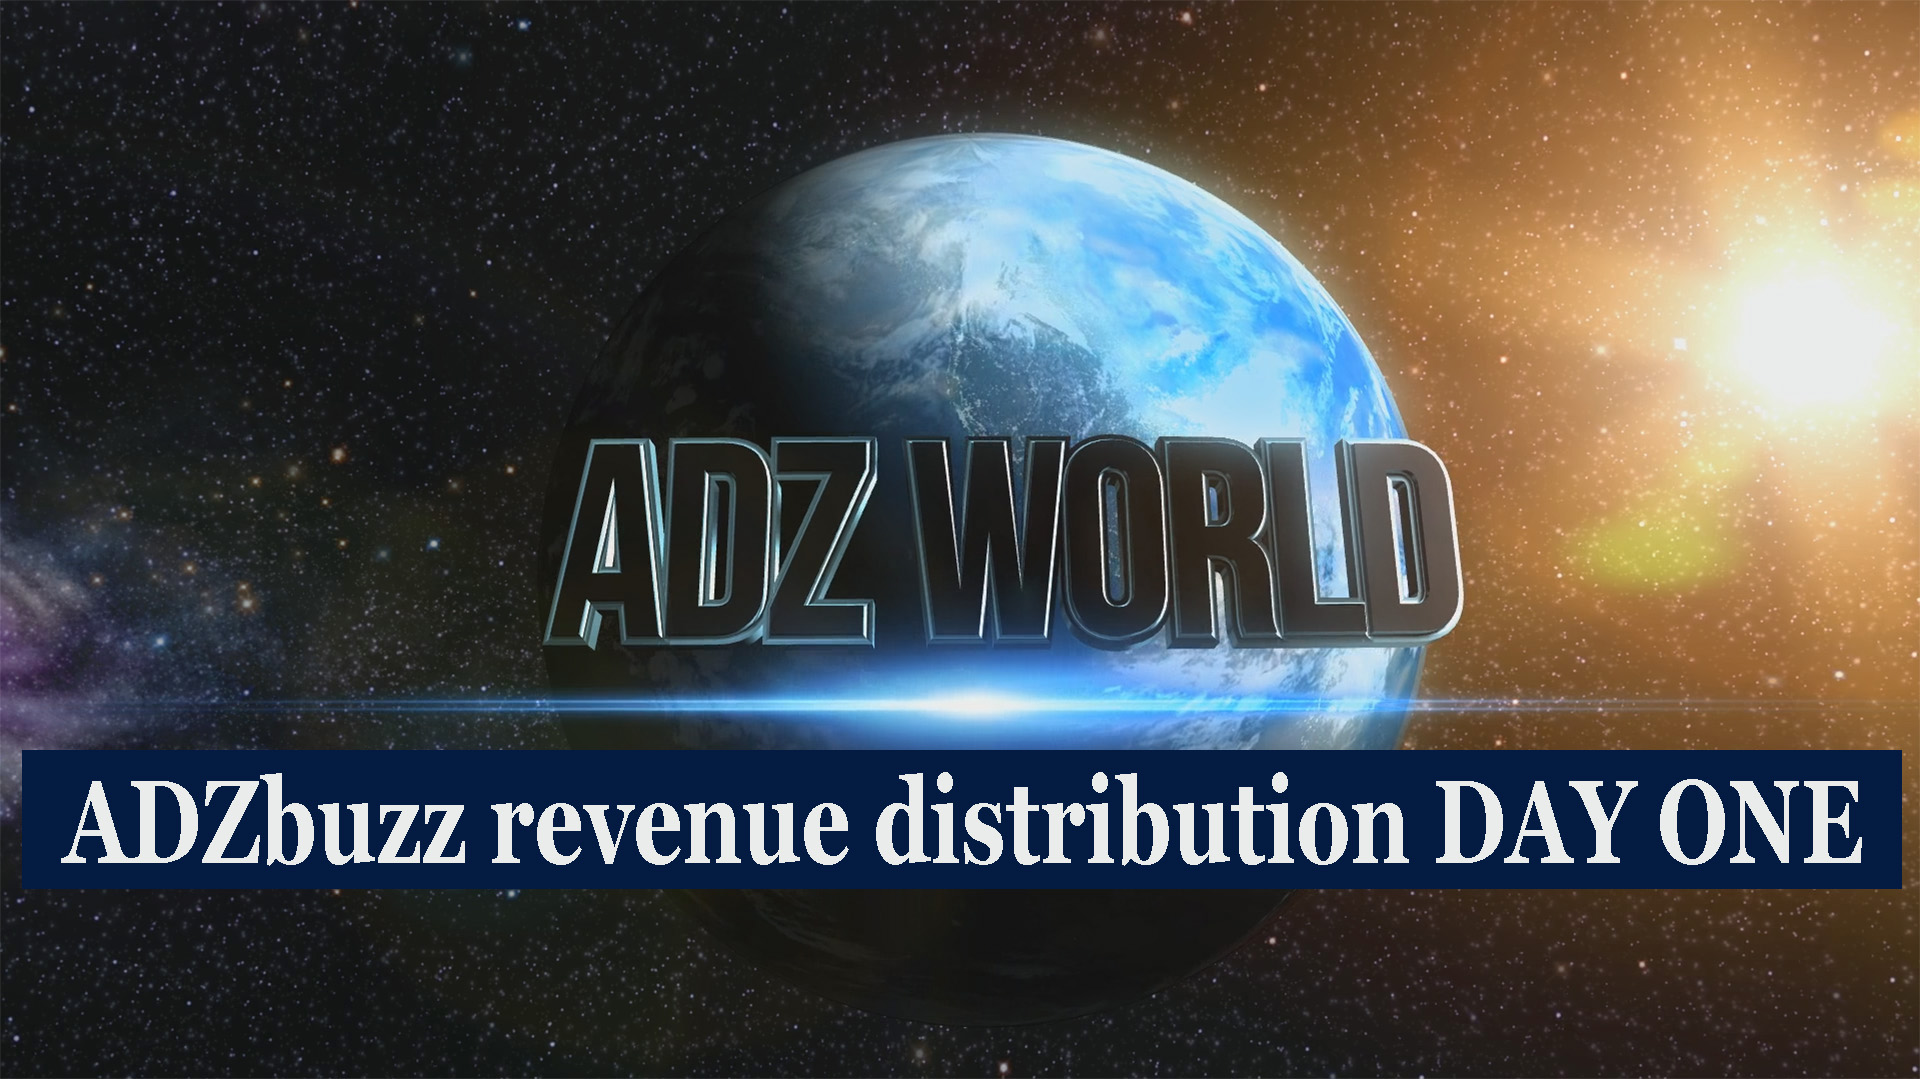 ADZbuzz first revenue distribution